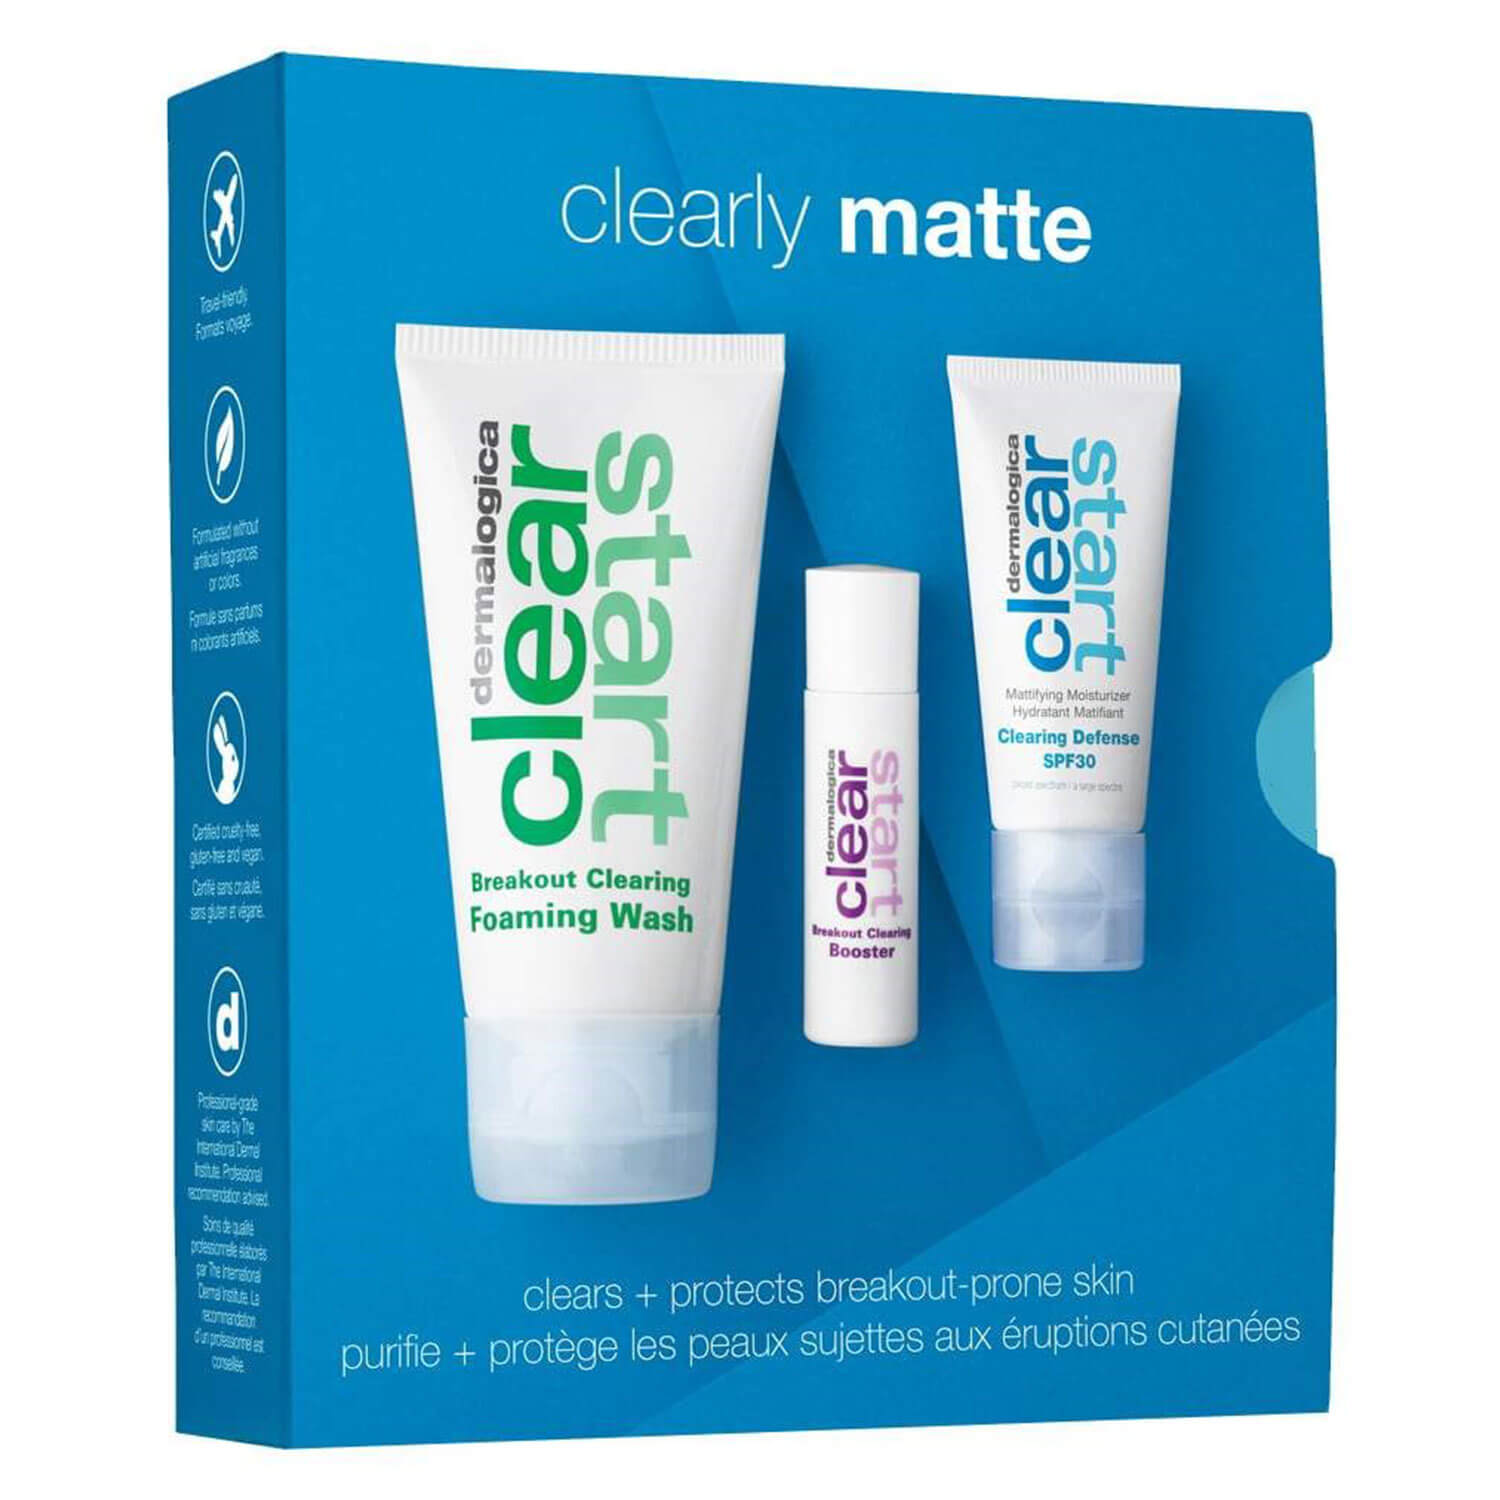 Clear Start - Clearly Matte Skin Kit